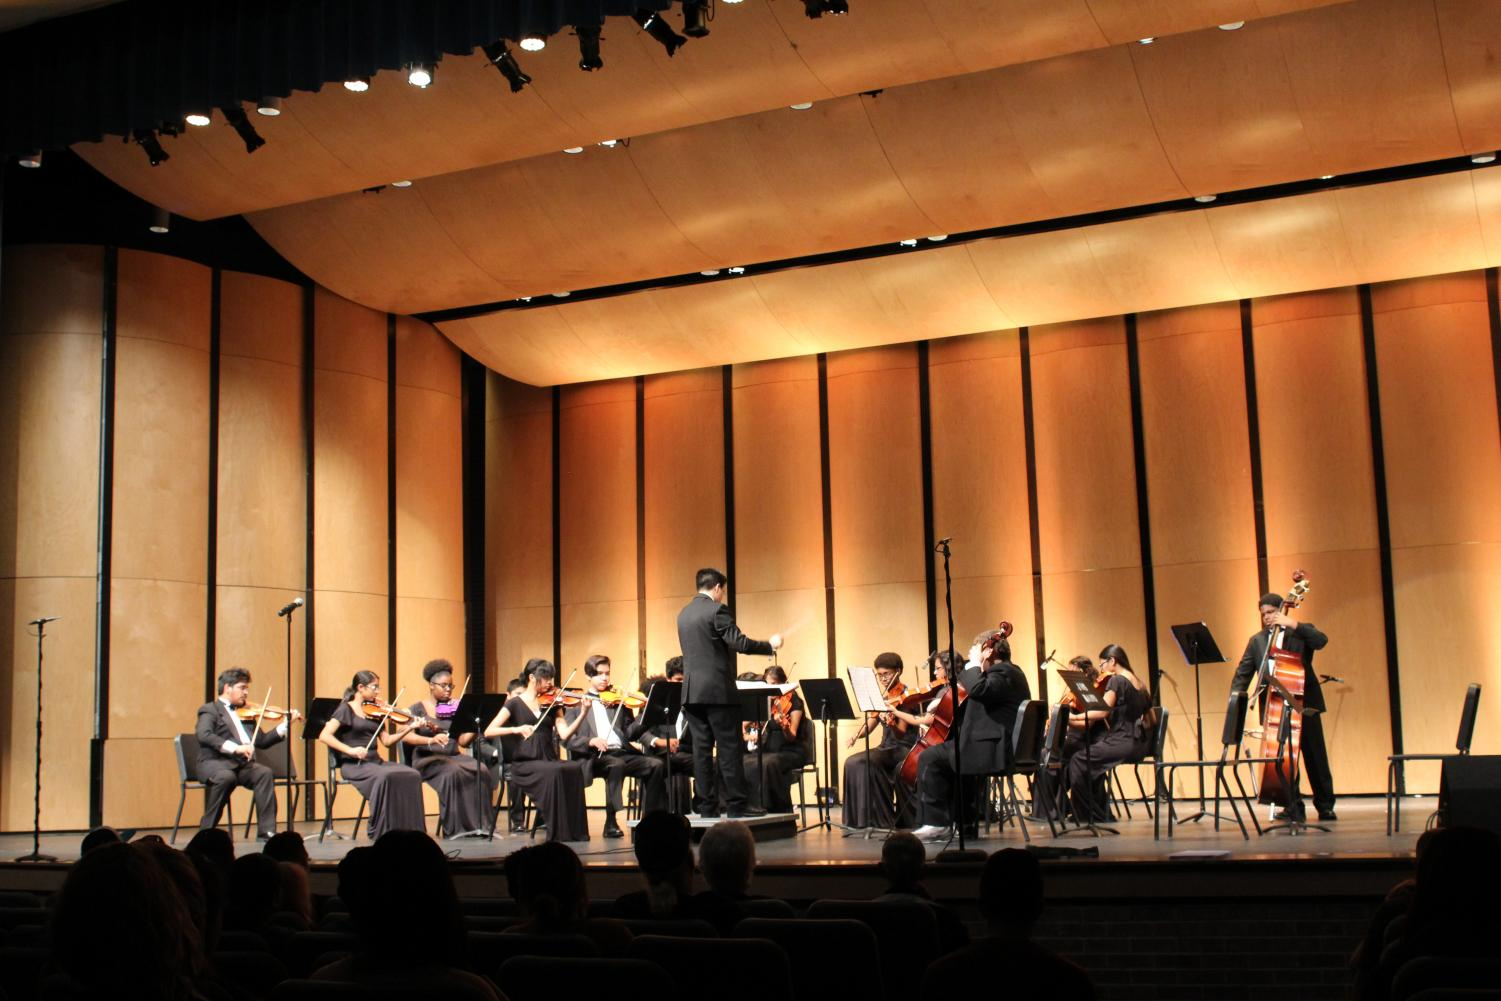 Orchestra director Mr. Robert Sabo directes freshman orchestra group. The orchestra won their first UIL sweepstakes in a long time under Sabo's direction last year.